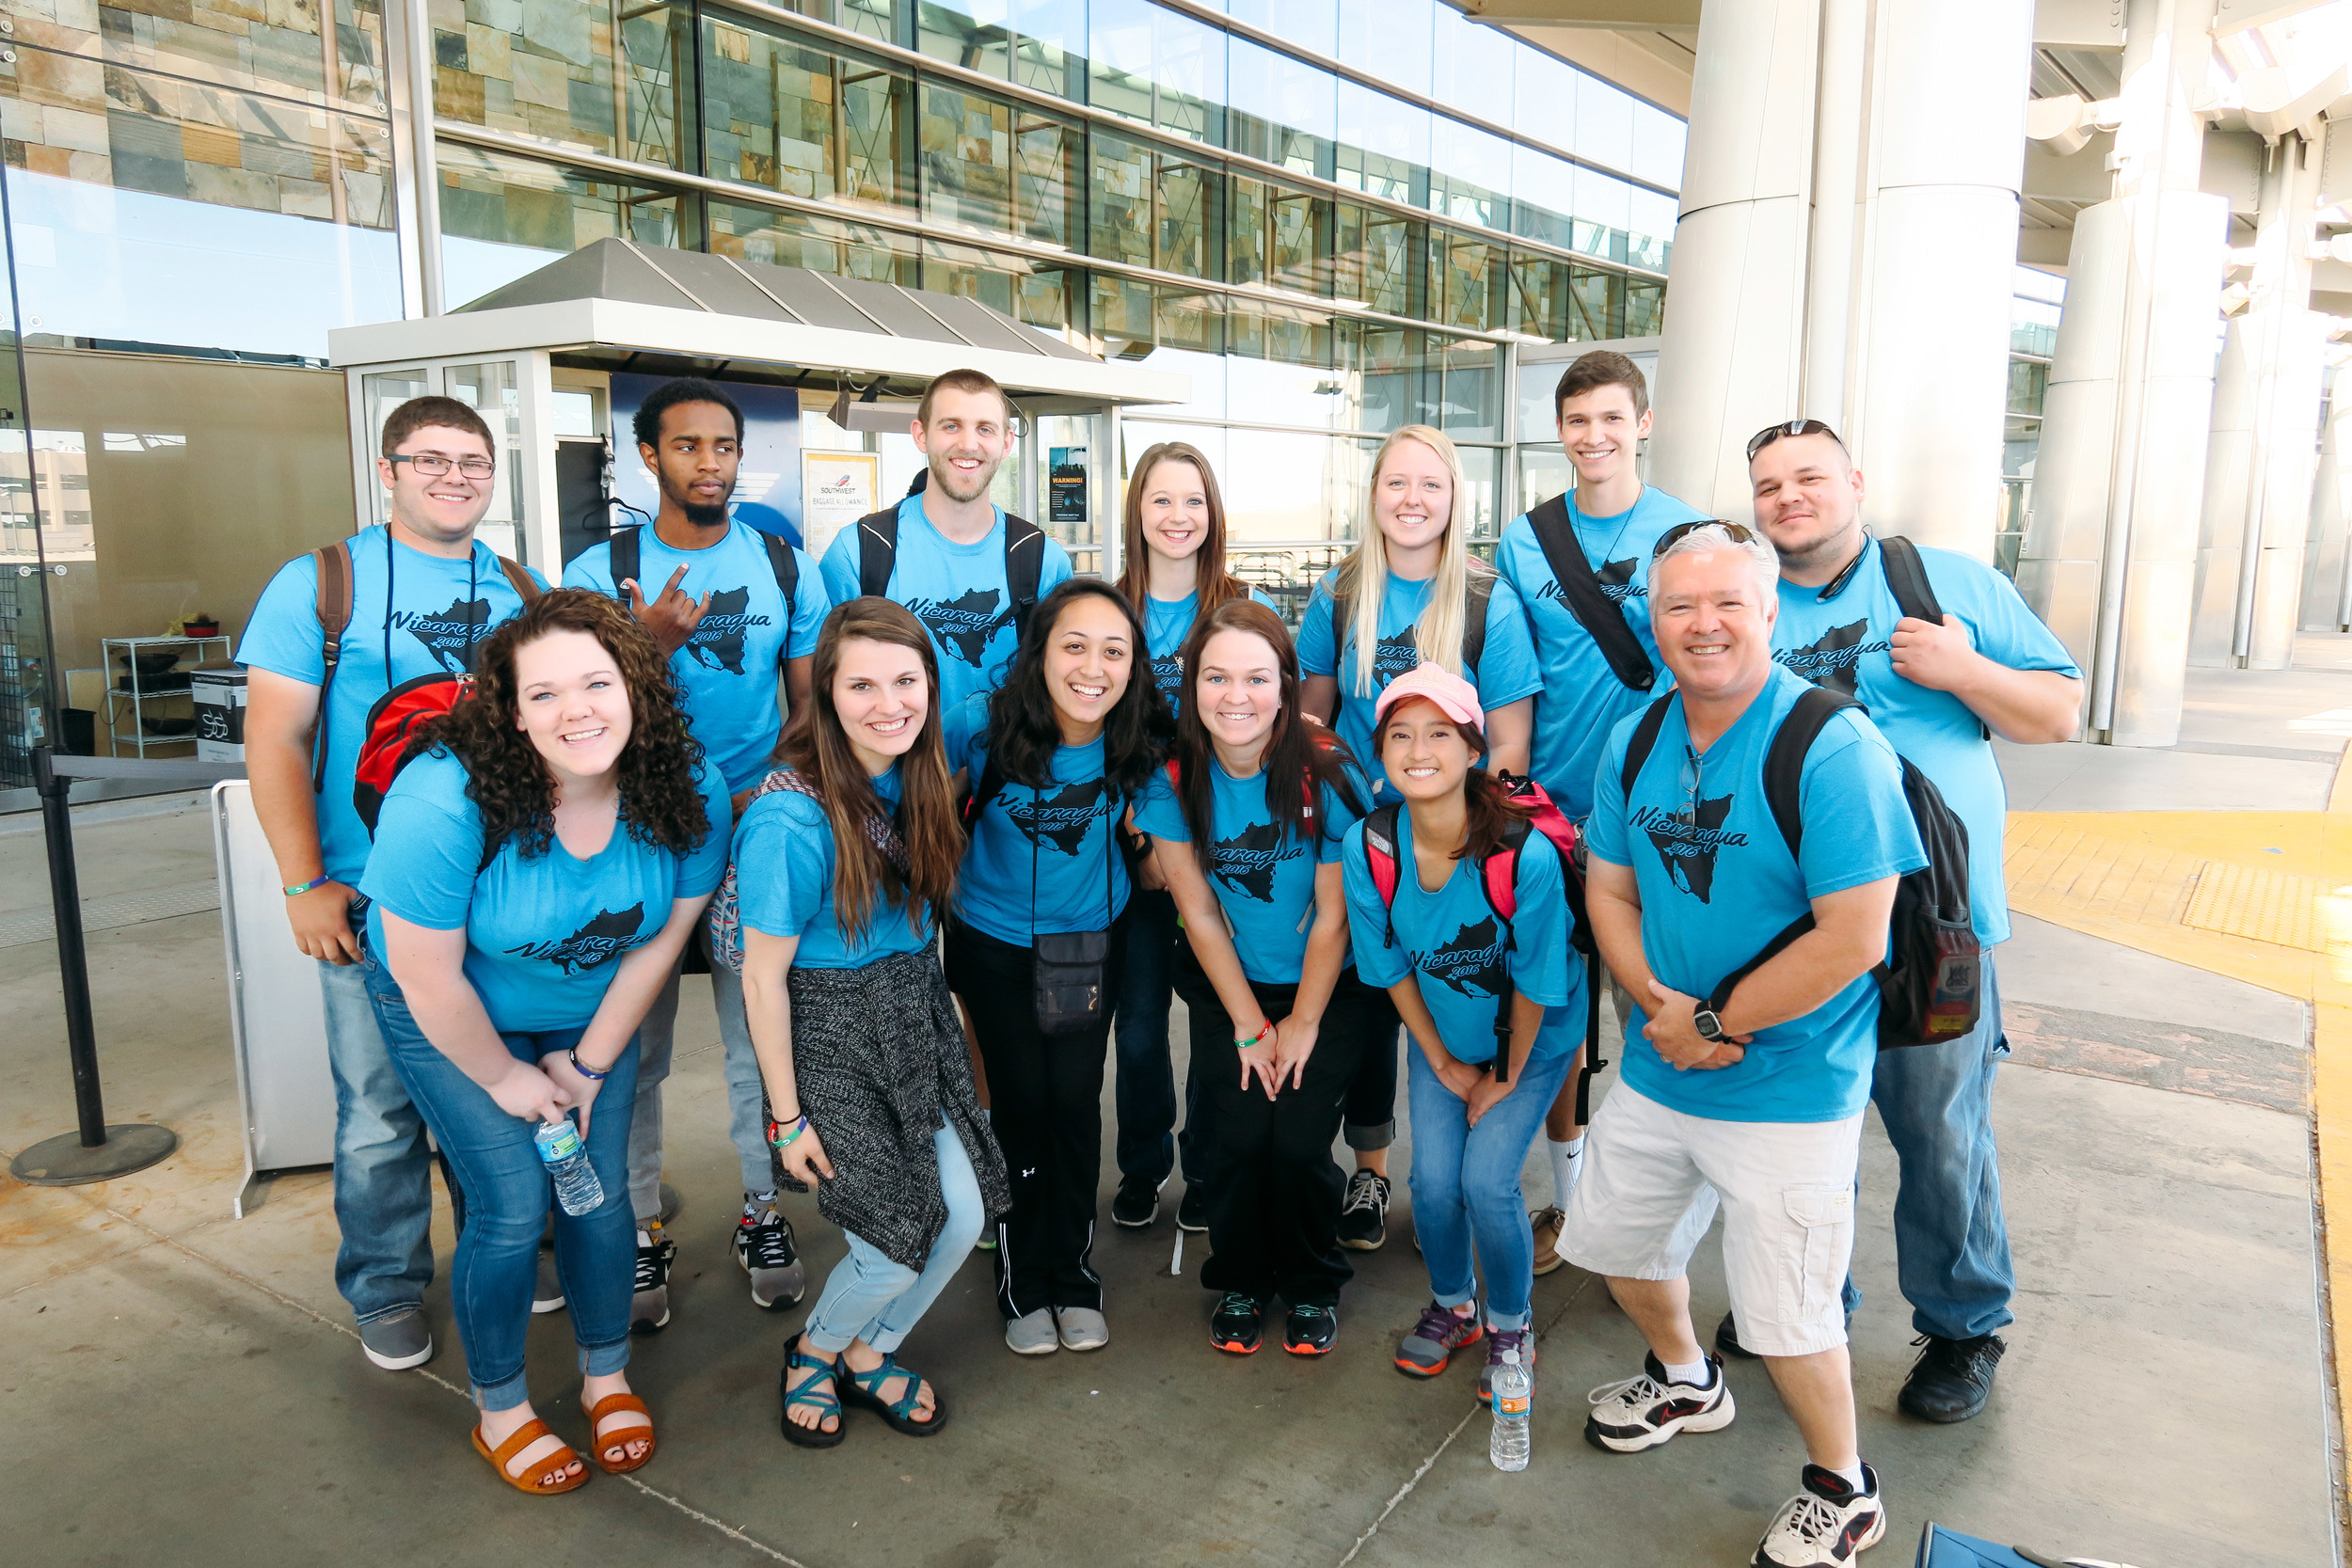 Day One: Little did we know what God was doing to do on our mission trip.